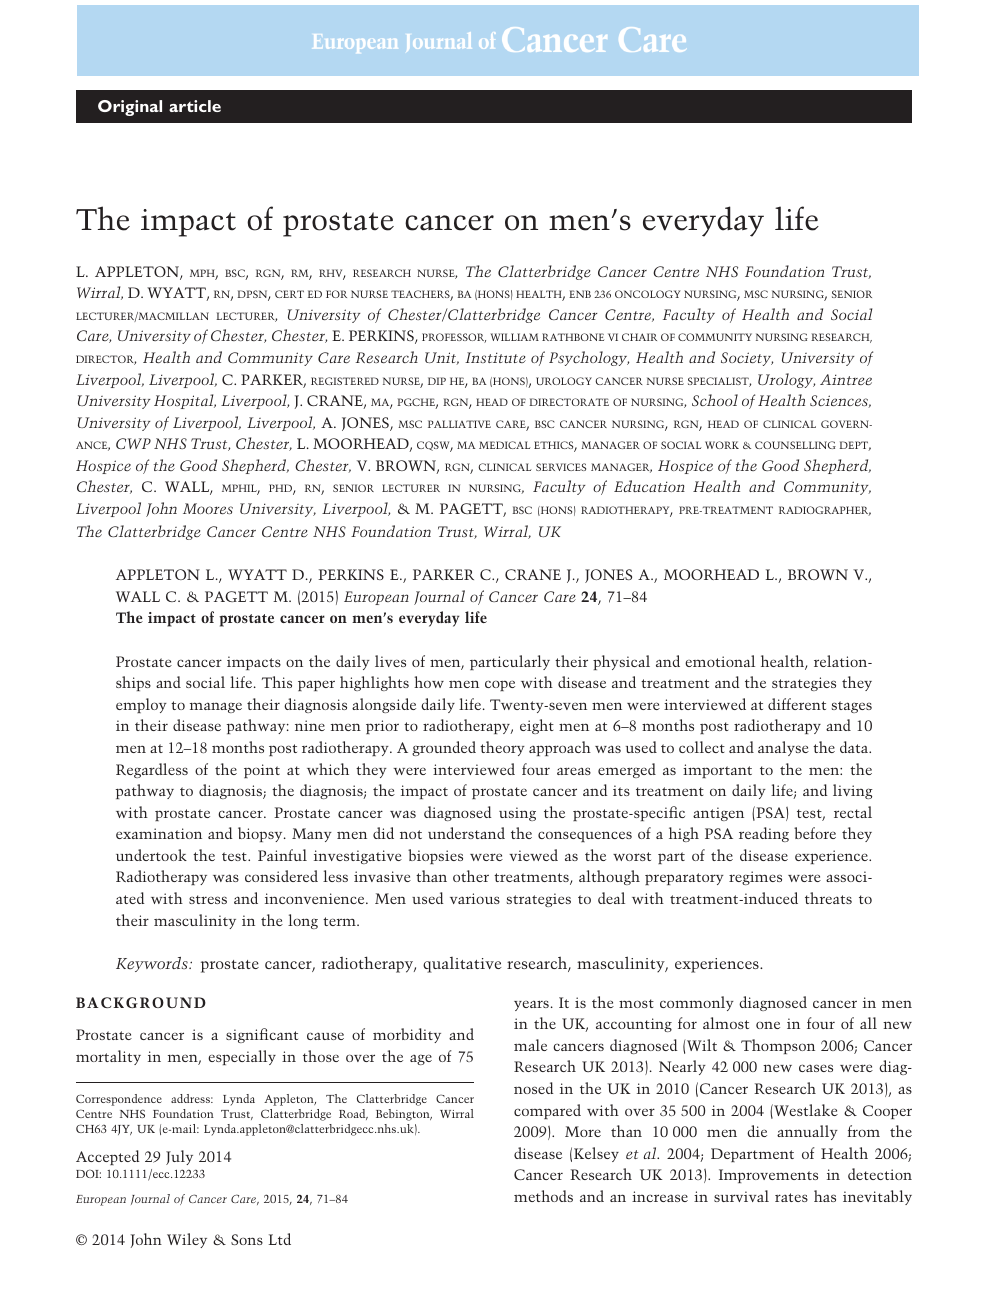 005 Cancer Research Paper Marvelous Topics Prostate Skin Ideas Full